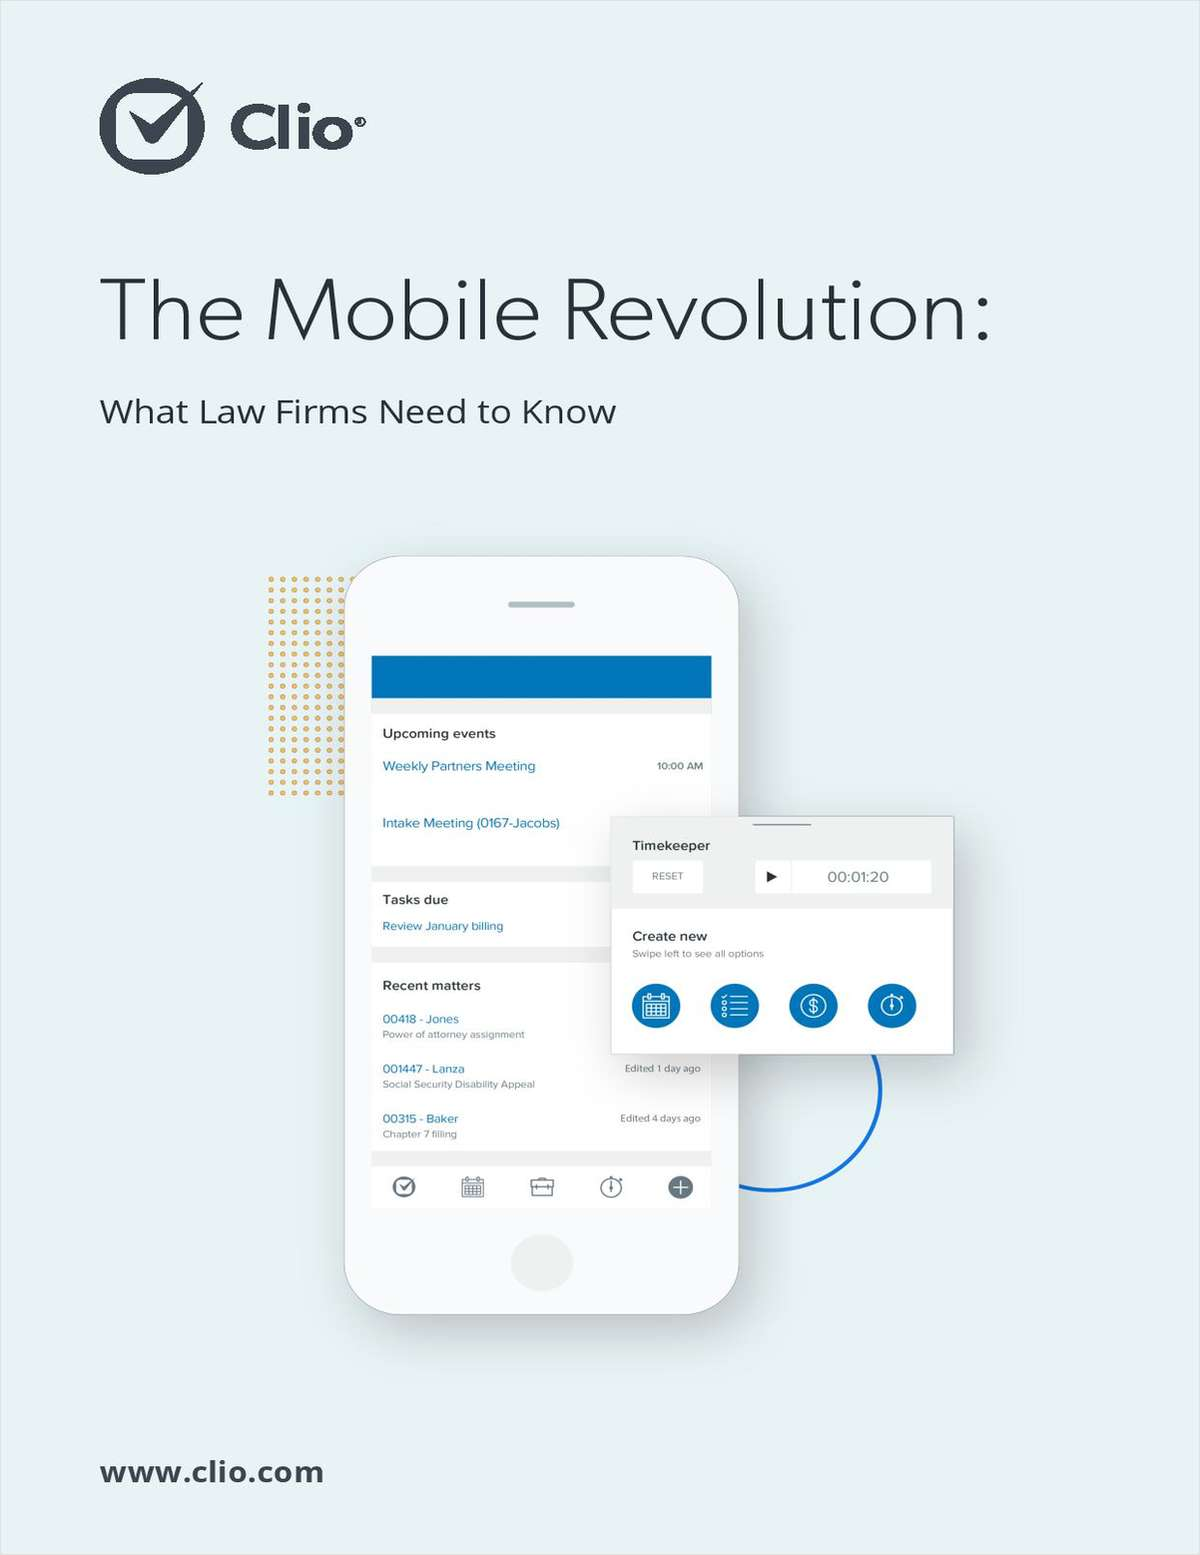 The Mobile Revolution: What Law Firms Need to Know